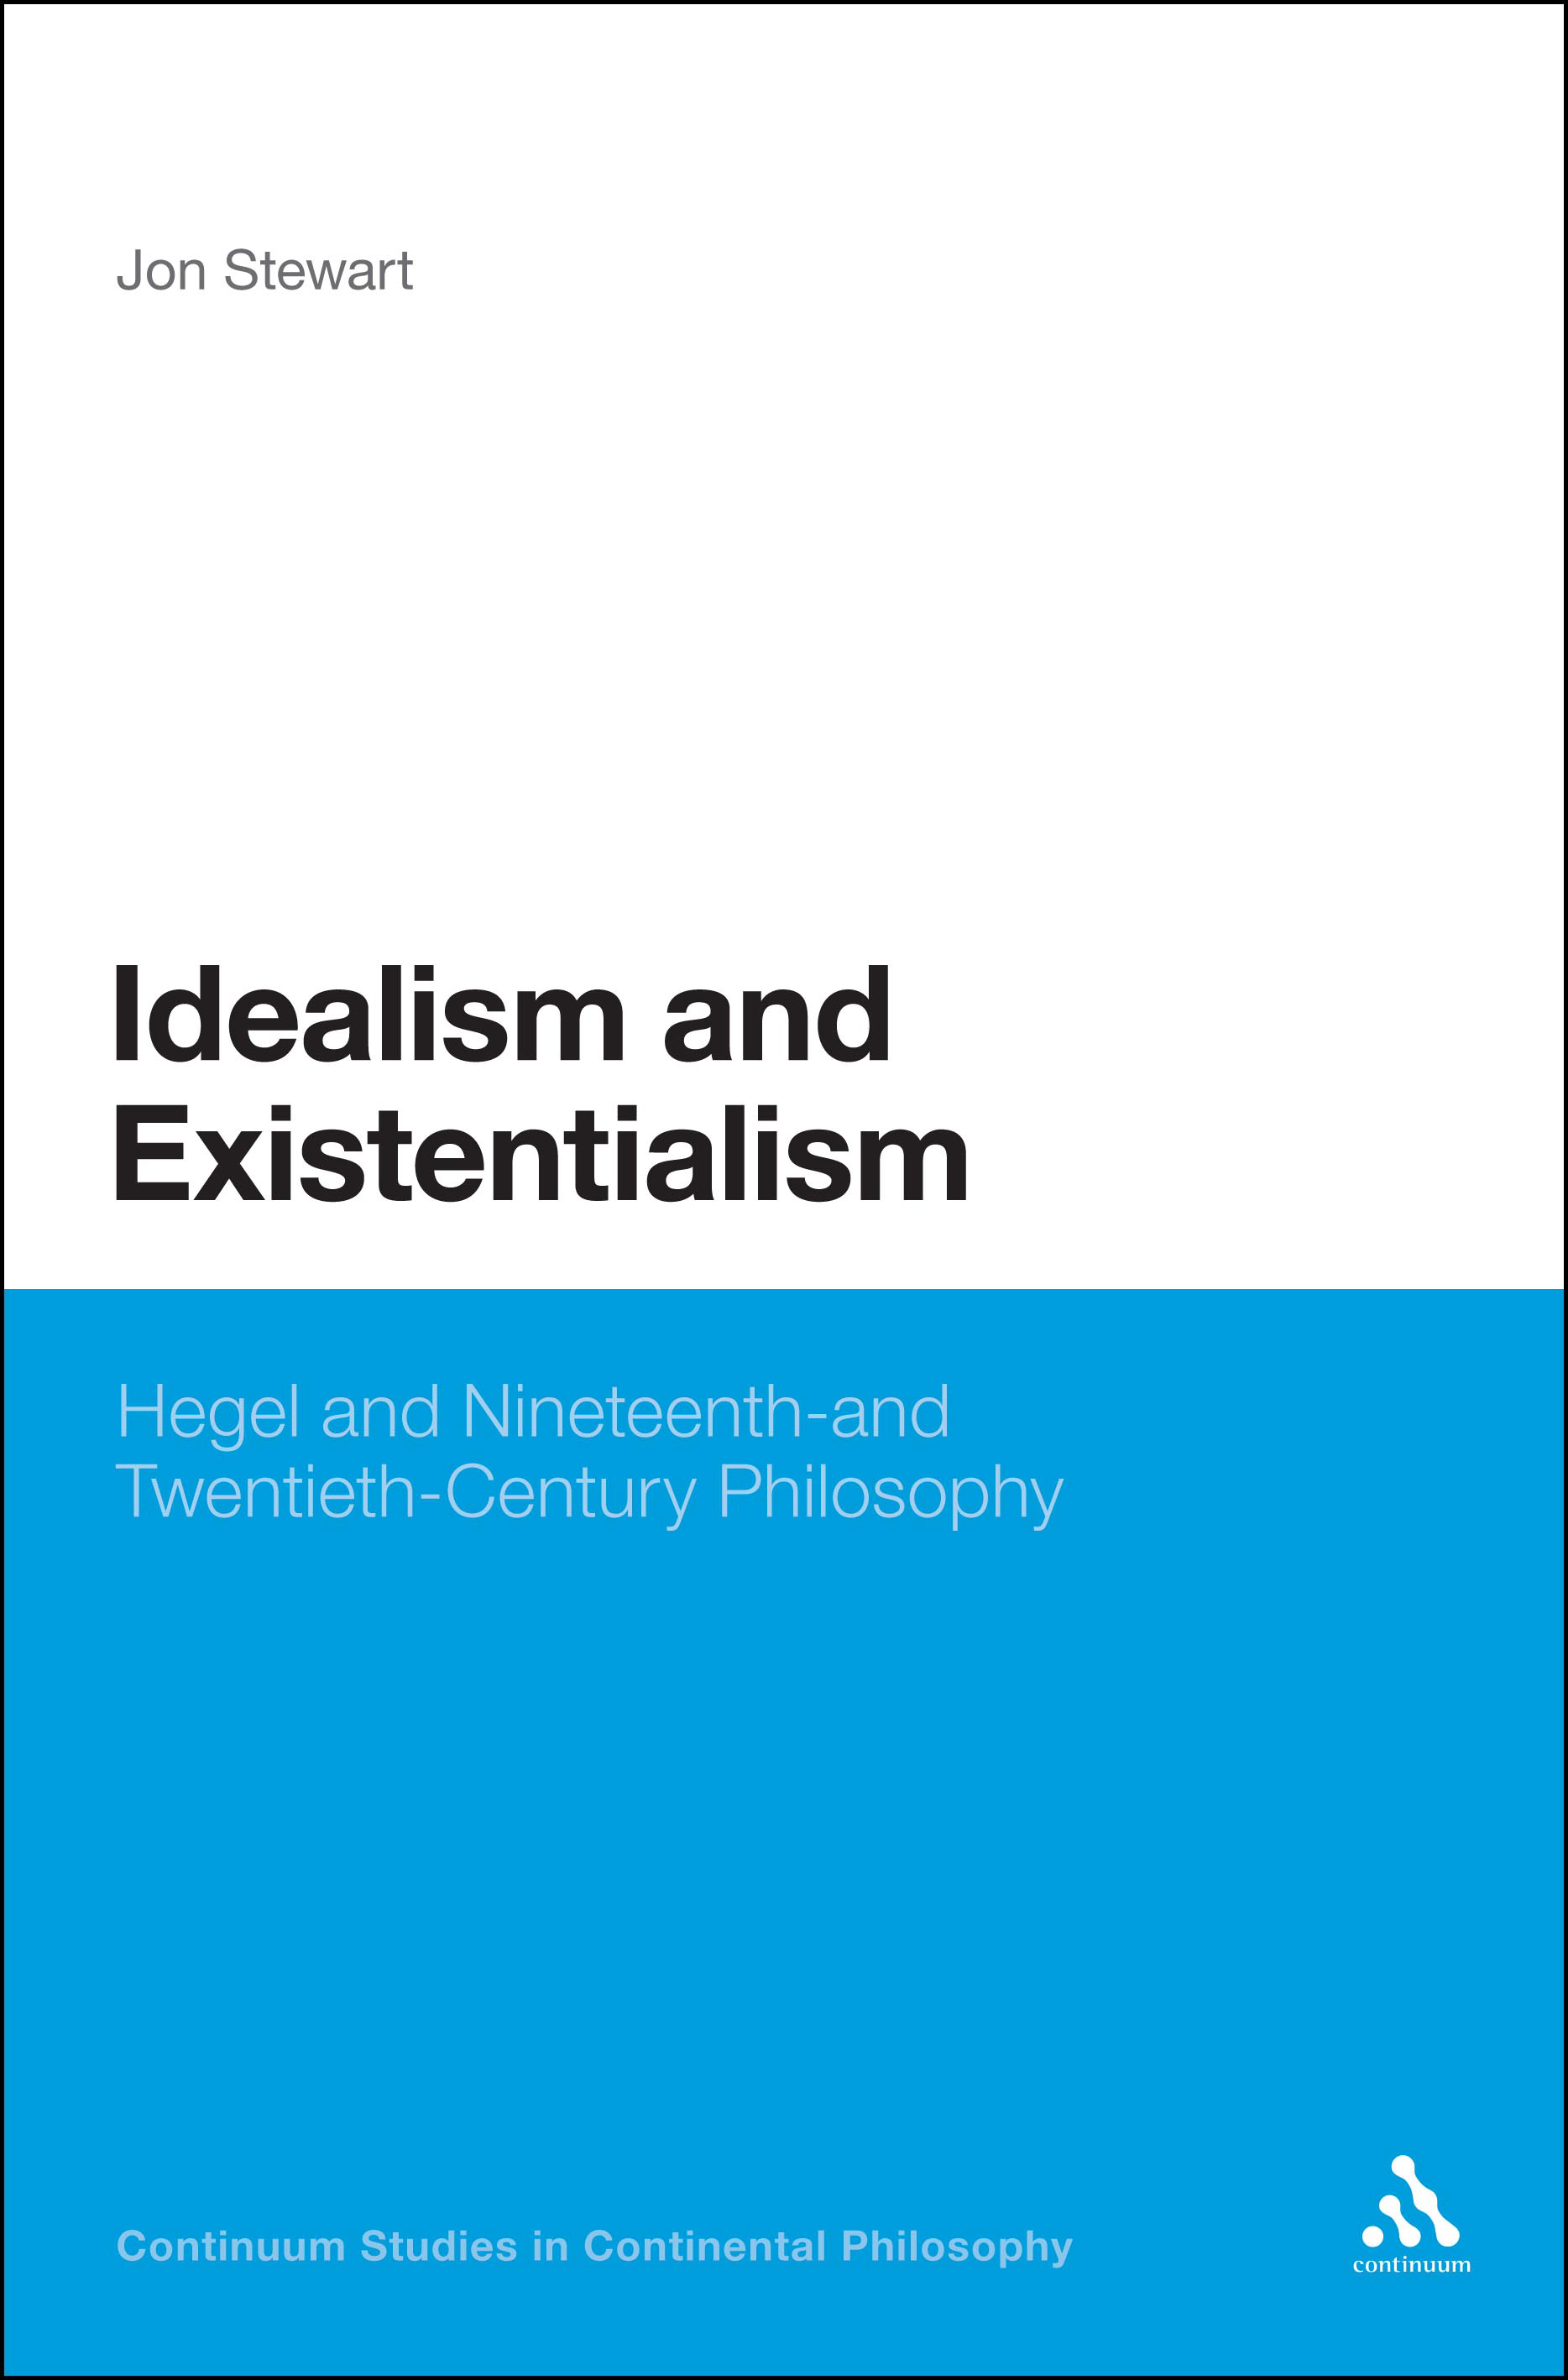 ... 2014.03.17. ▫ Idealism and Existentialism: Hegel and Nineteenth- and  Twentieth-Century European Philosophy New York and London: Continuum  International ...